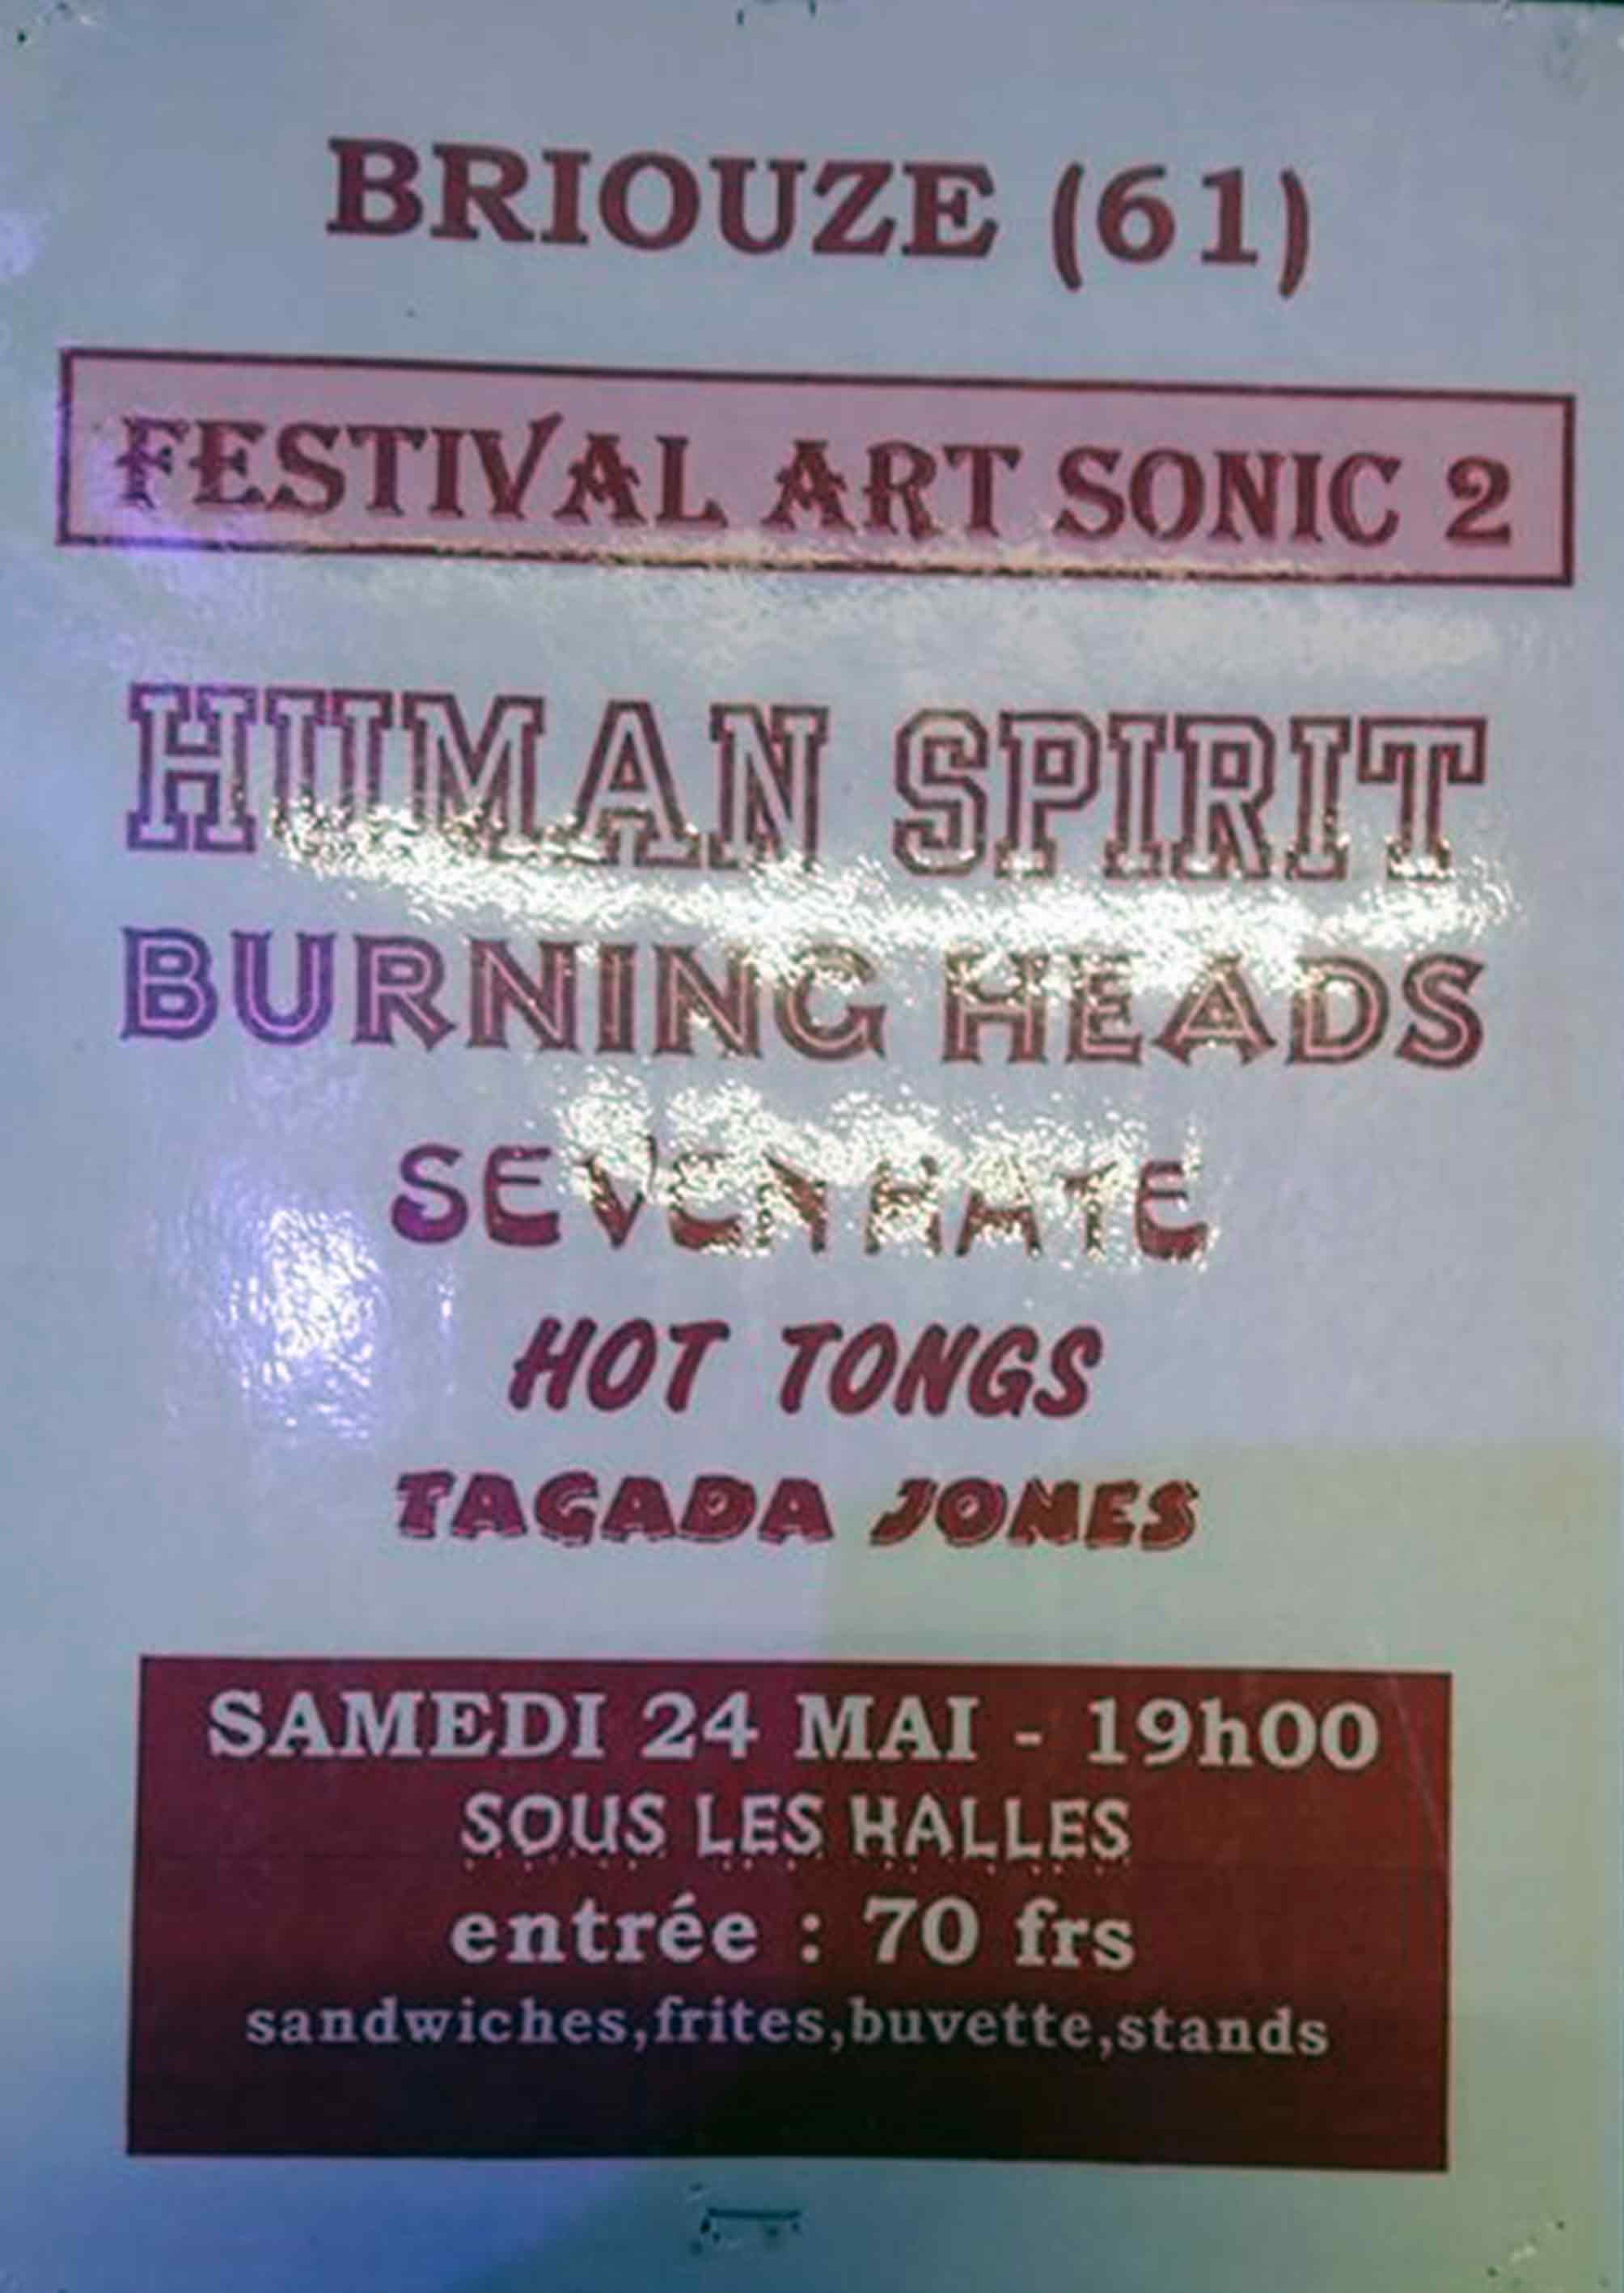 "24 mai 1997 Human Spirit, Burning Heads, Seven Hate, Hot Tongs, Tagada Jones à Brioude ""Sous les Halles"""